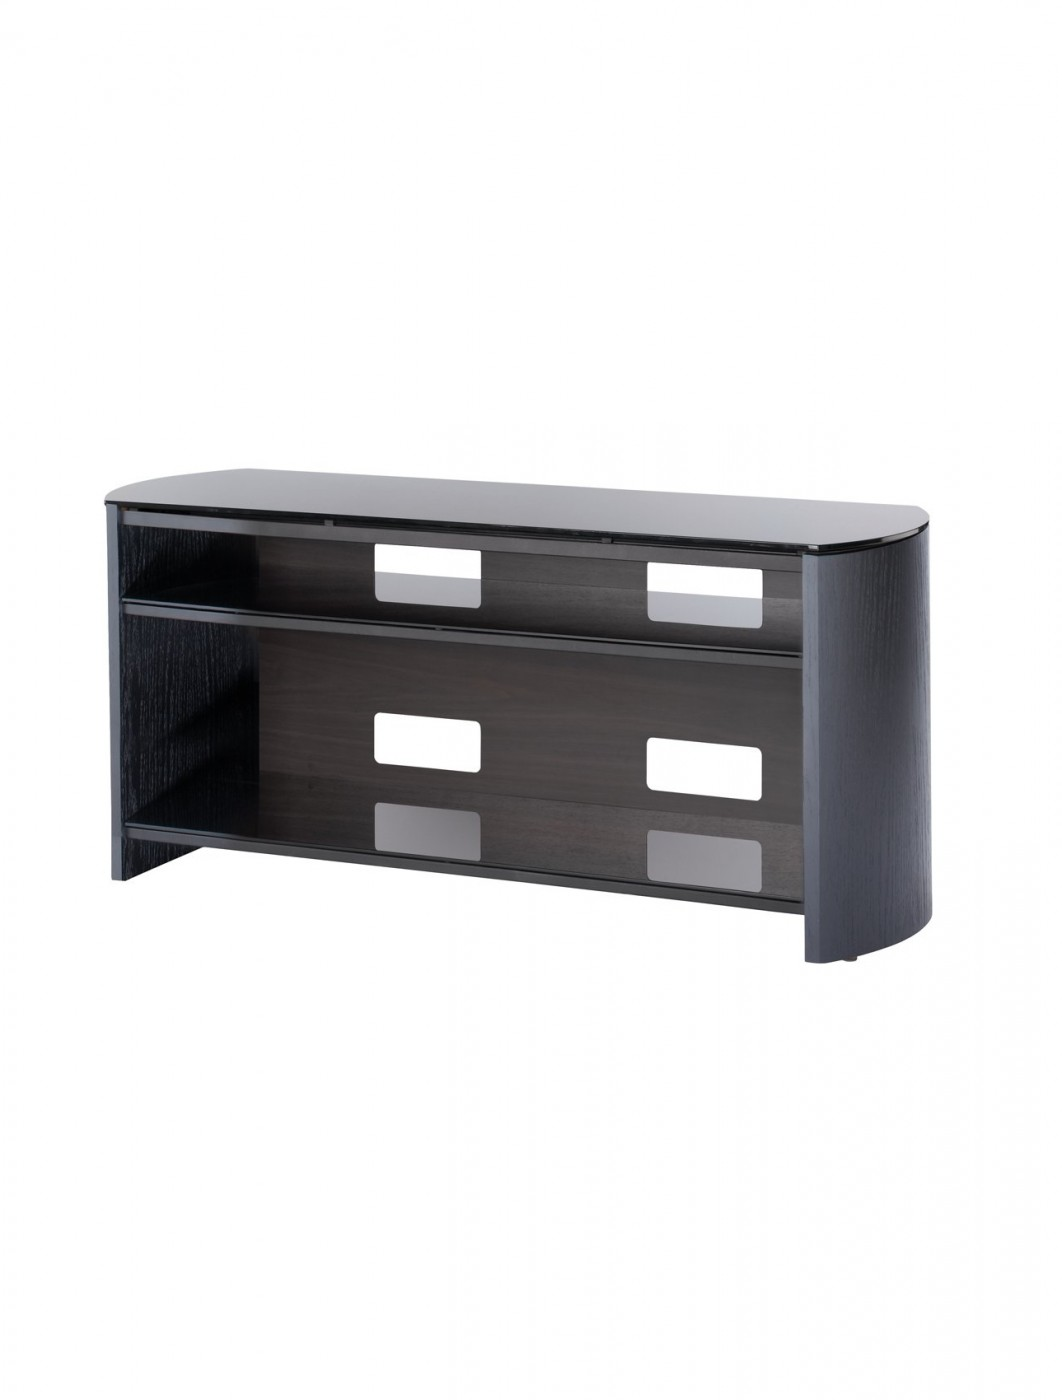 alphason fw1100 bv b finewoods tv stand 121 tv mounts. Black Bedroom Furniture Sets. Home Design Ideas